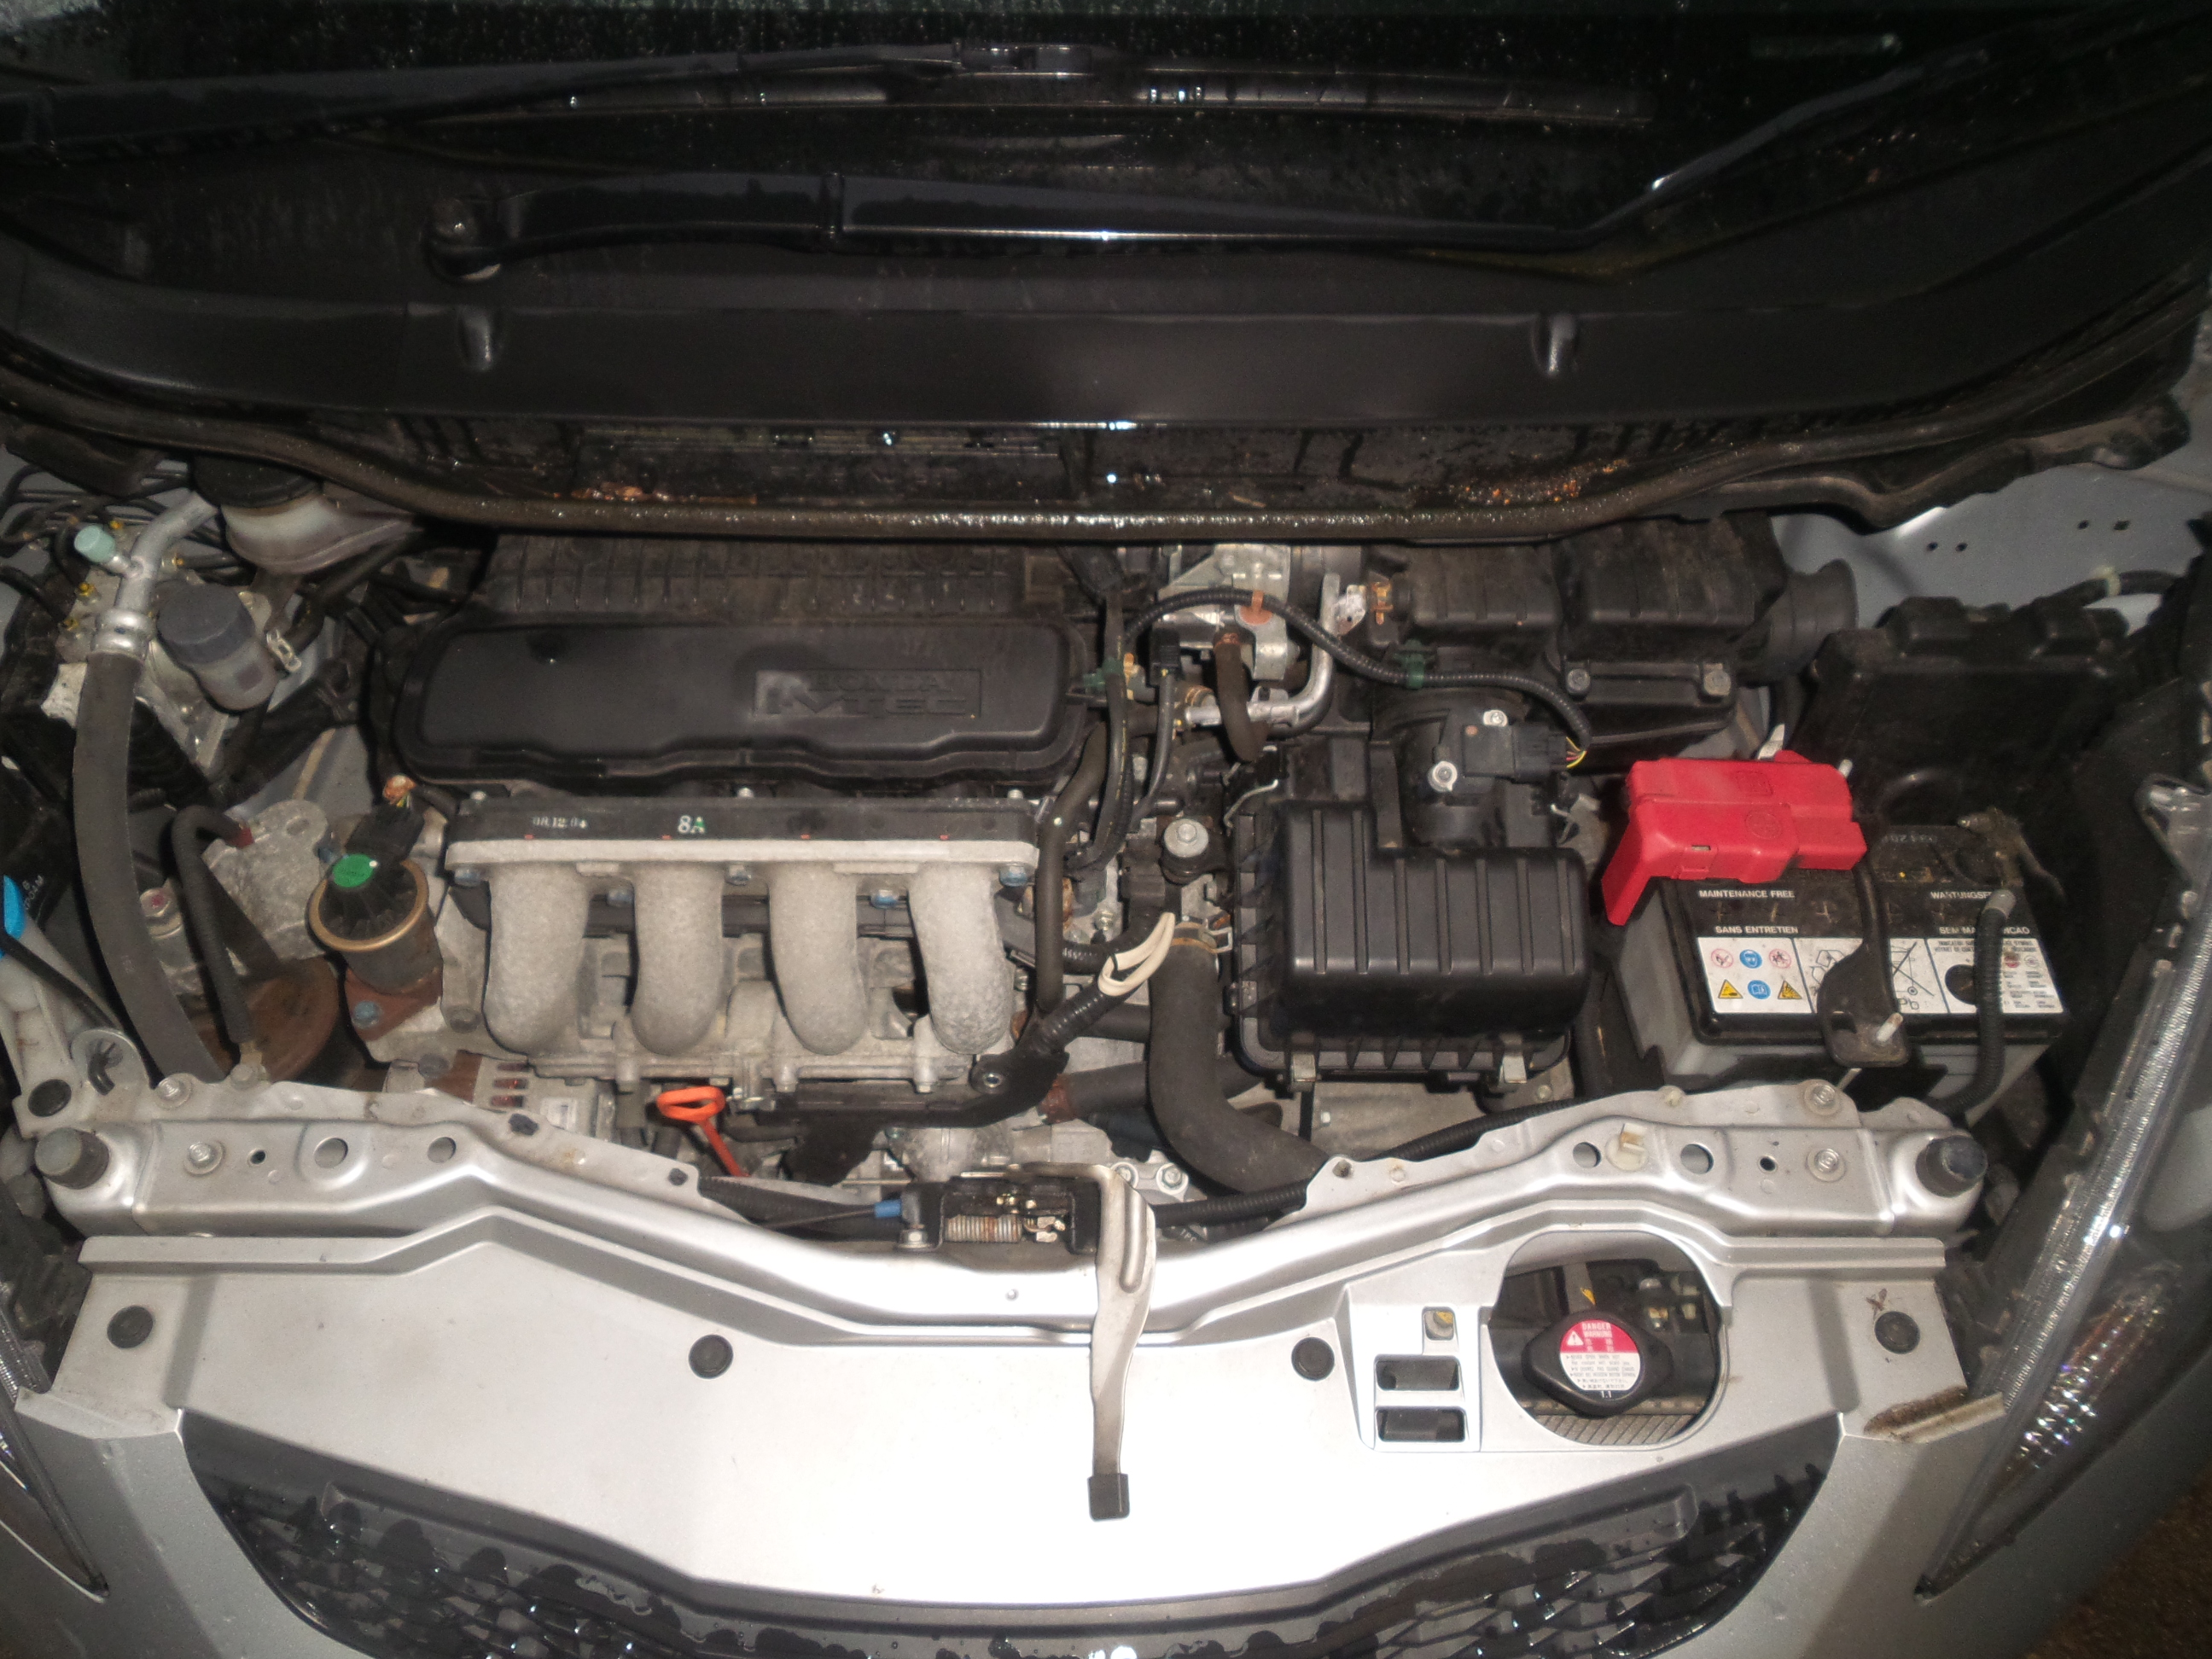 Image for a 2009 Honda Jazz 1.3 Petrol L13Z1 Engine